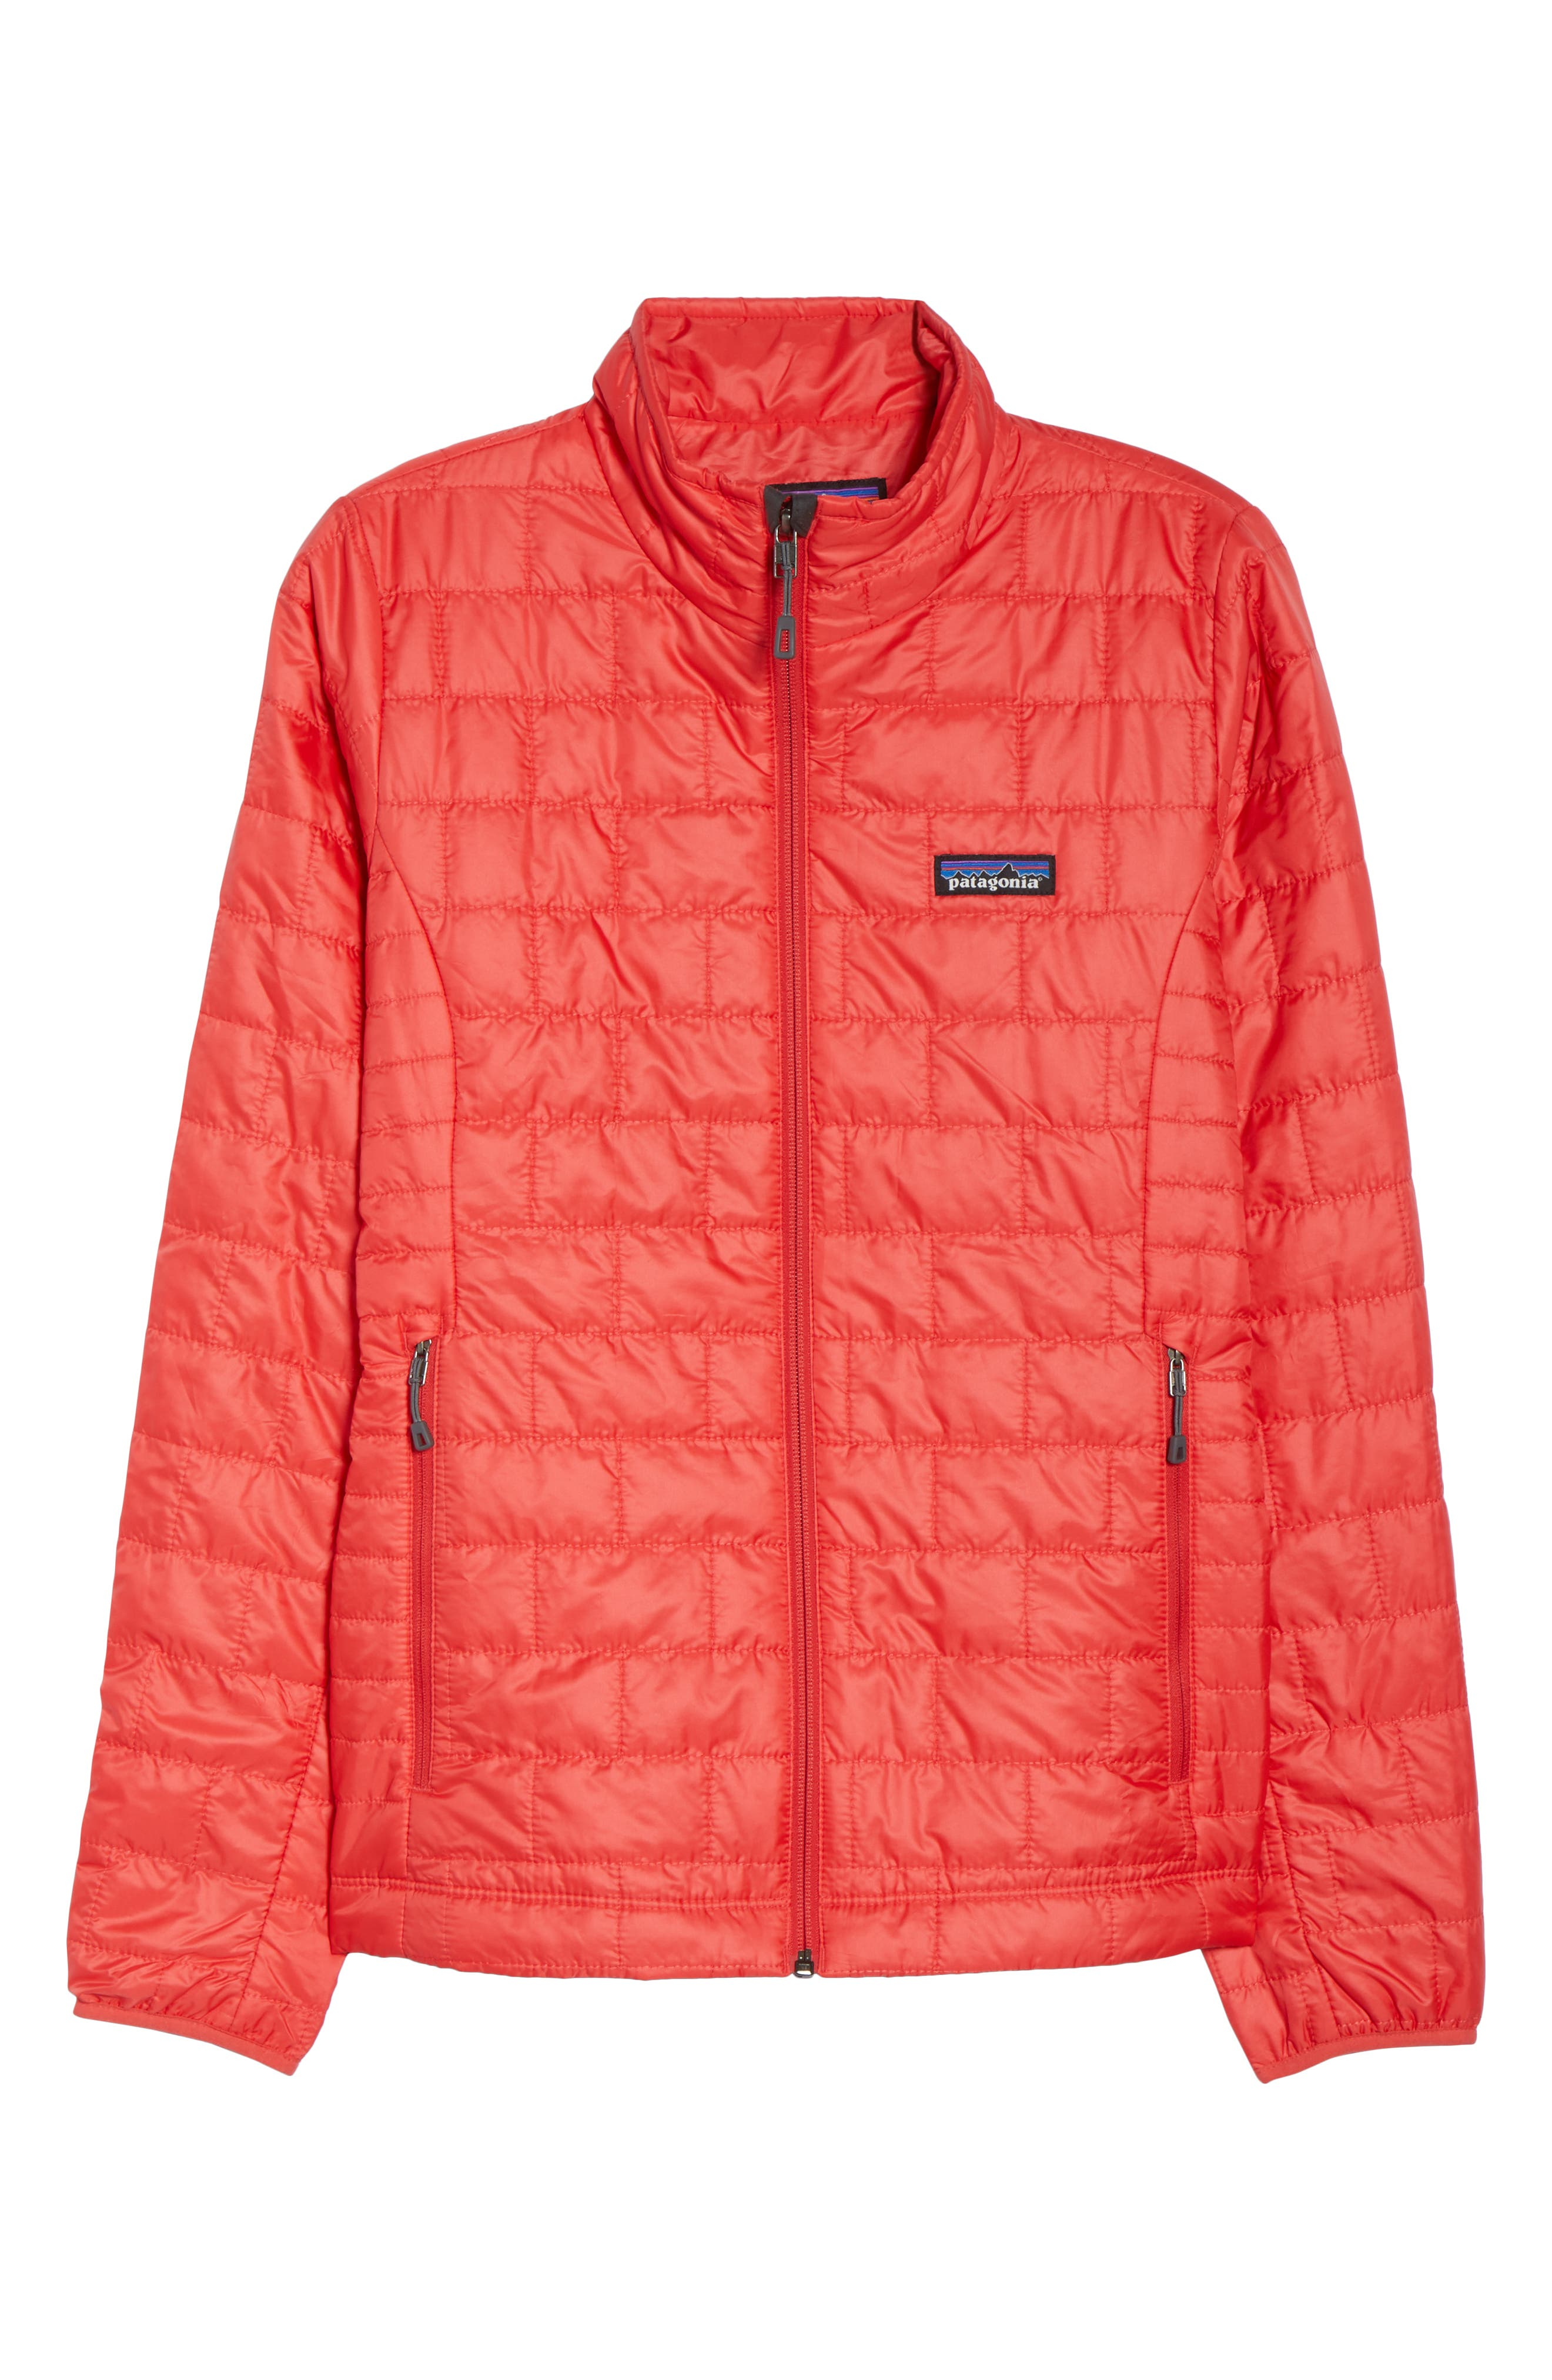 Nano Puff<sup>®</sup> Water Resistant Jacket,                             Alternate thumbnail 6, color,                             TOMATO